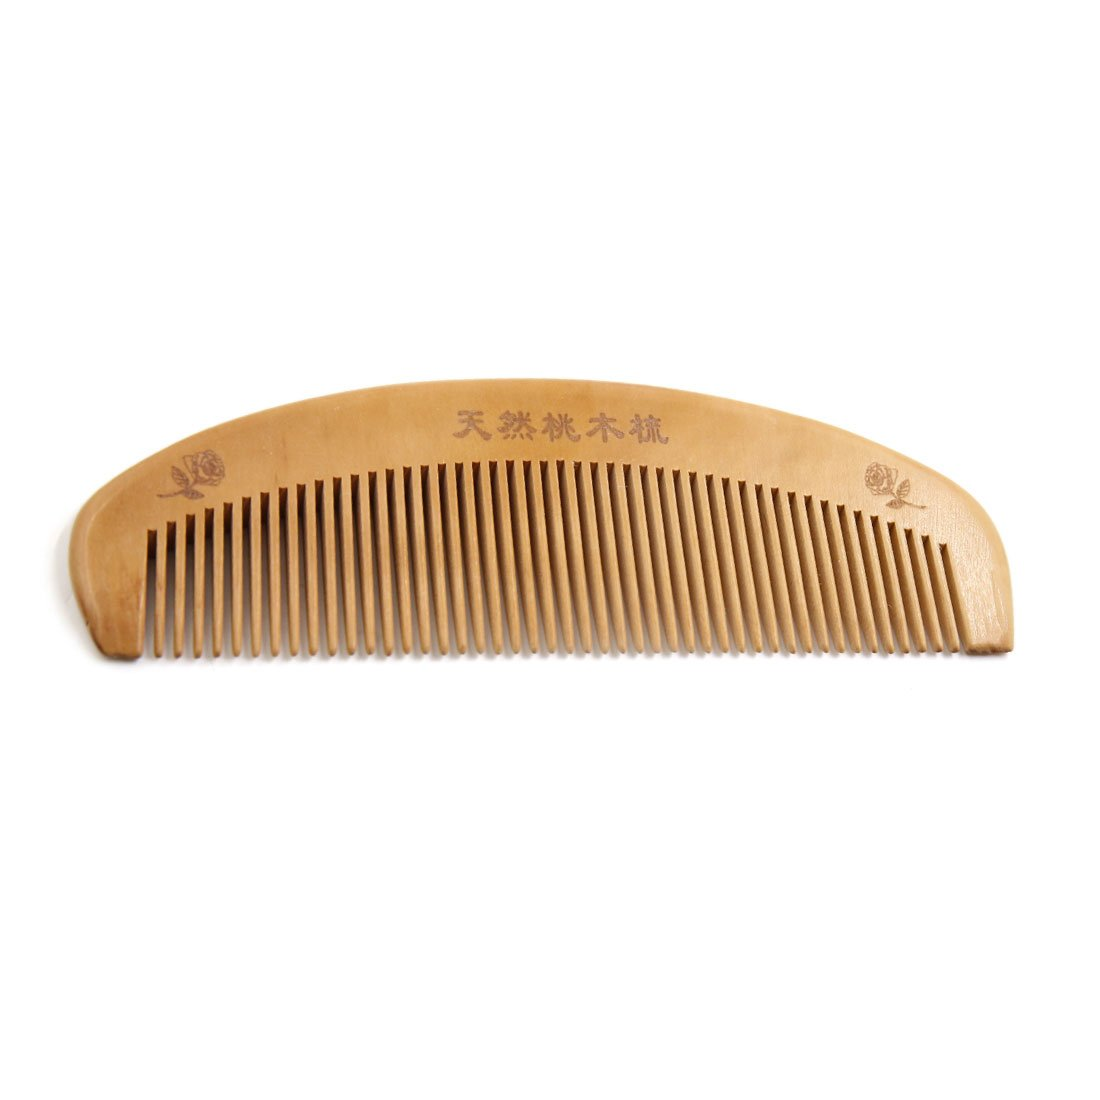 uxcellWooden Fine Tooth Anti-static Portable Beard Hair Beauty Massage Pocket Comb a17042600ux0968